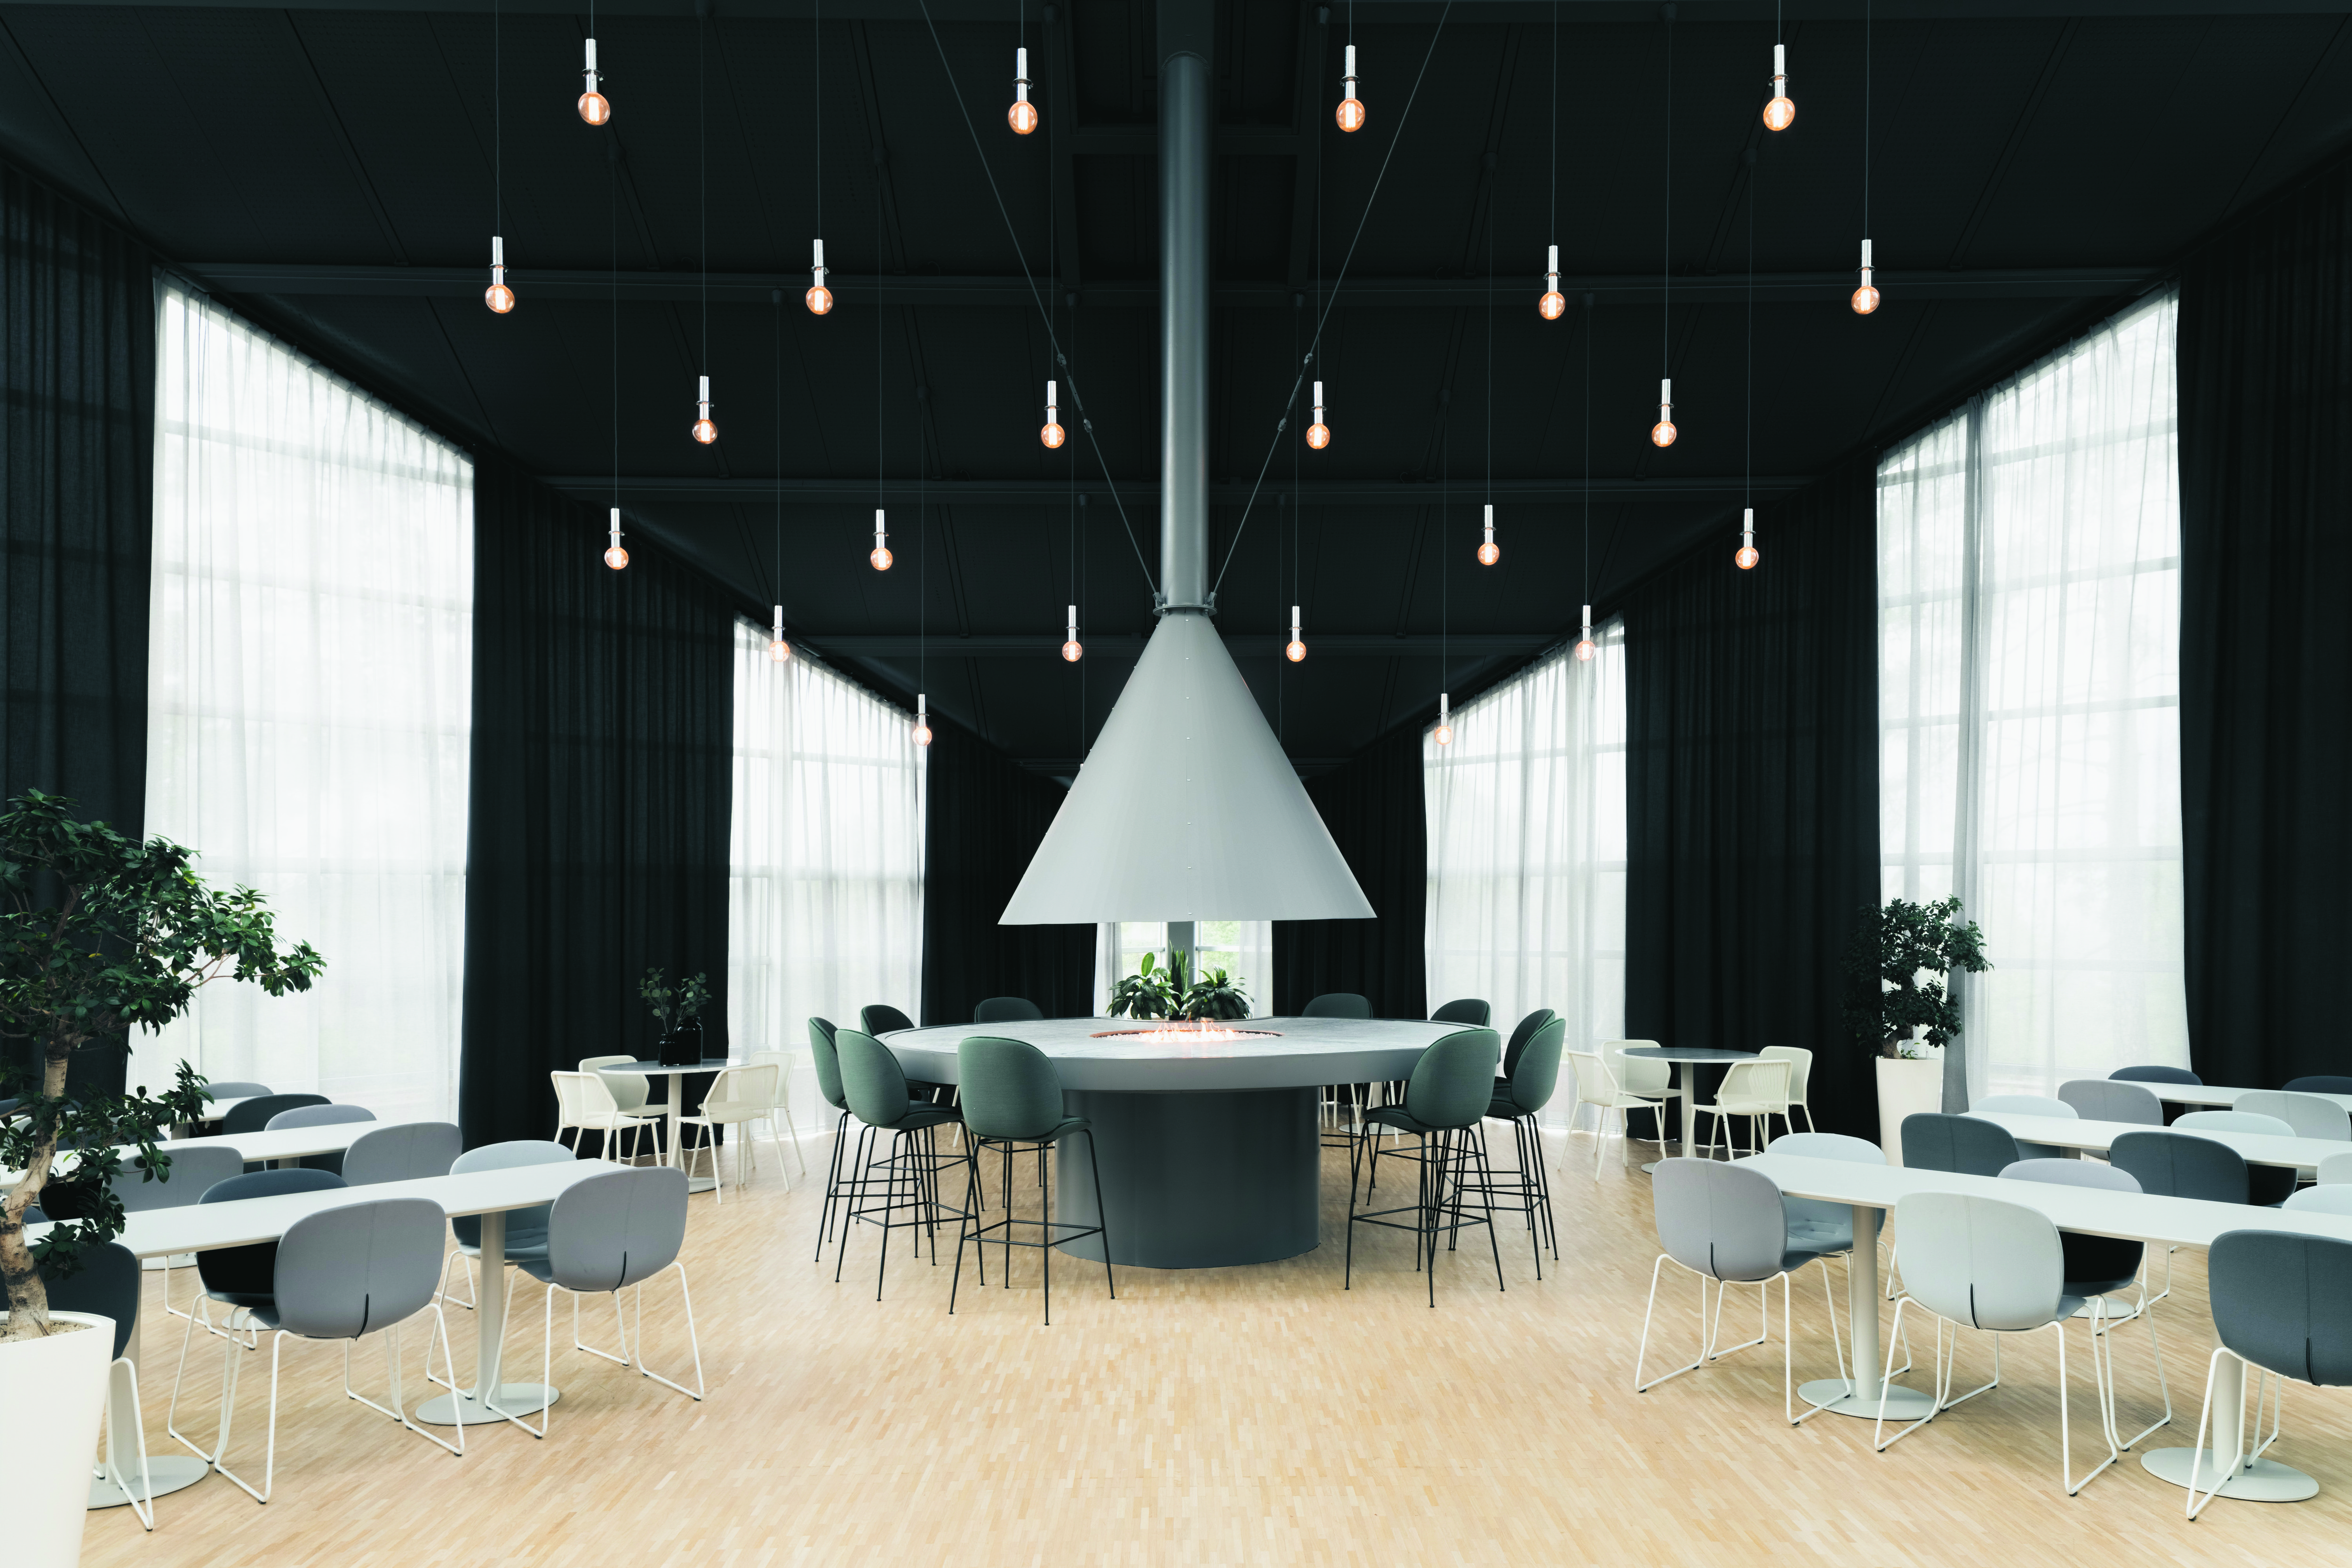 open canteen environment with dark walls and ceiling and hanging lights, with grey RBM noor chairs at tables